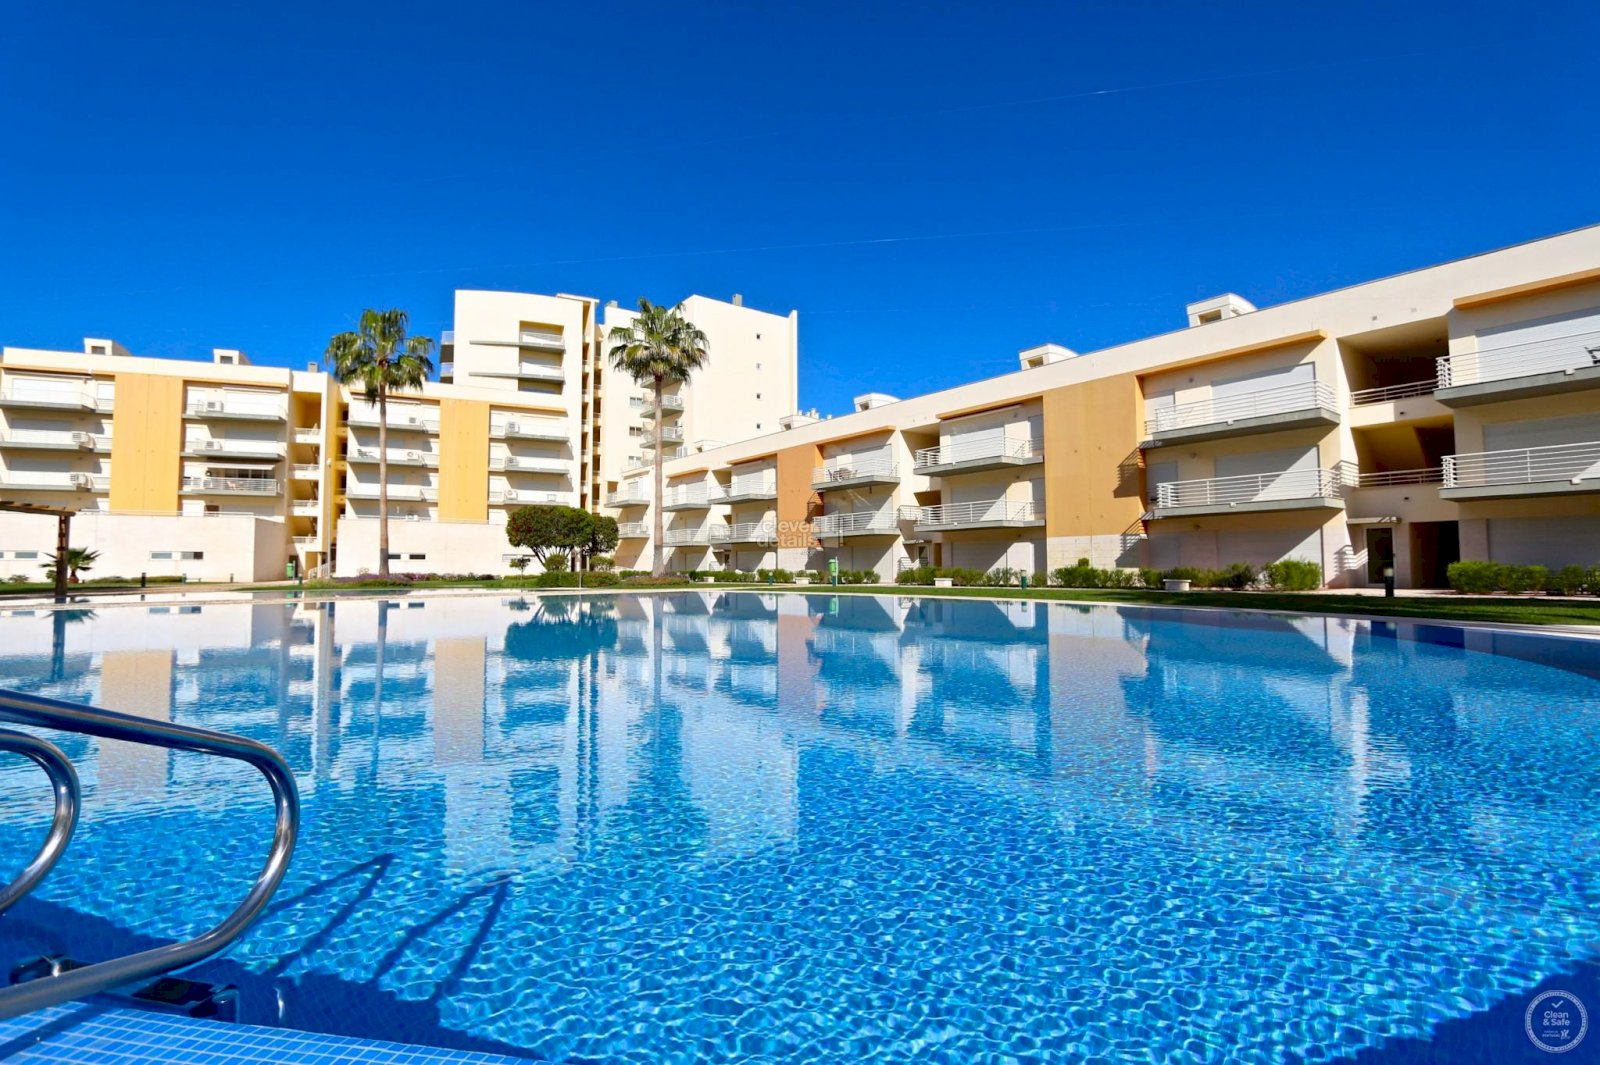 Vacation rentals in Vilamoura, walking distance to the marina and beach. Self catering apartments in Moura Praia.